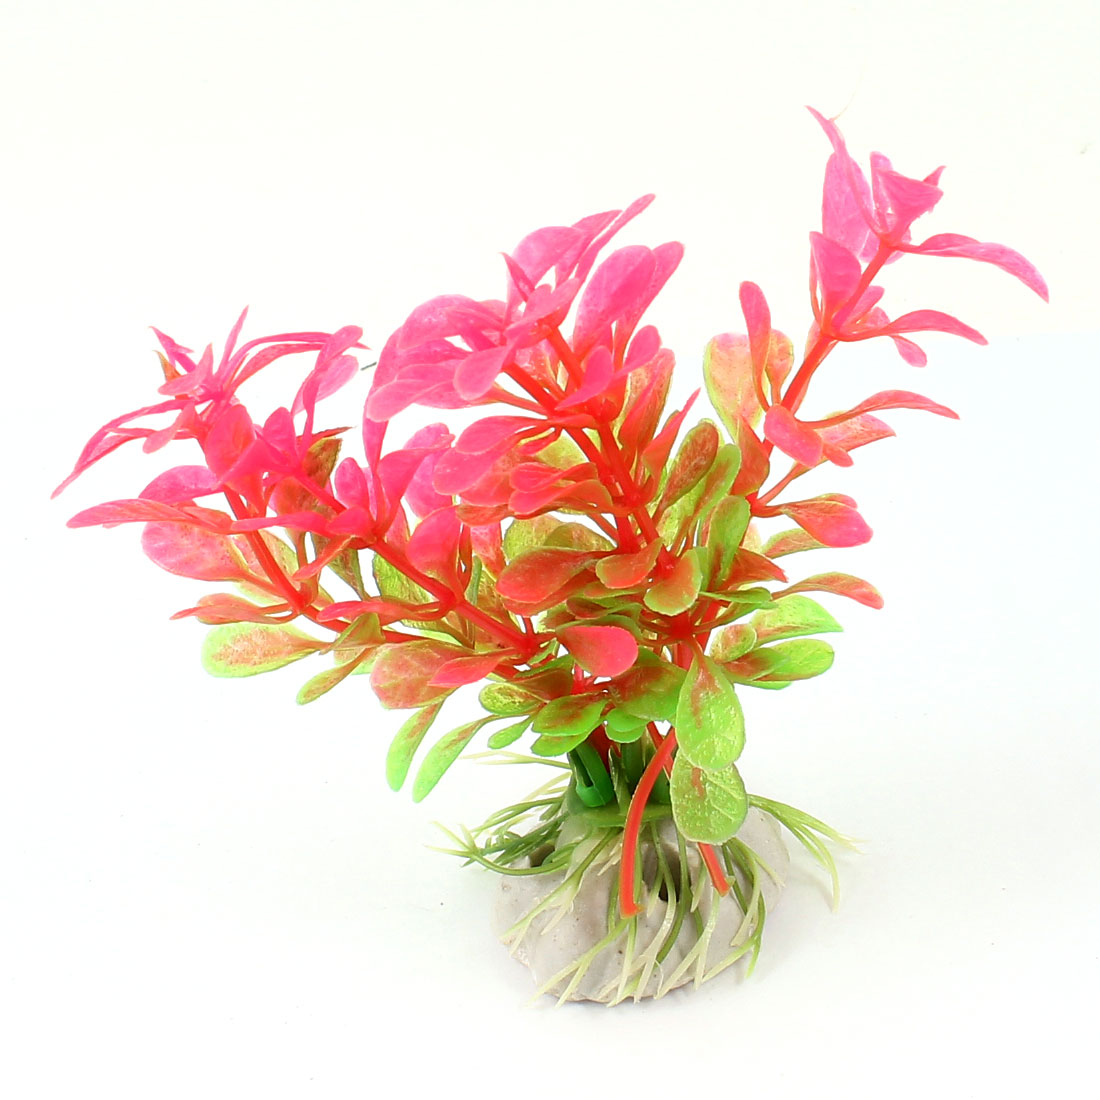 "Fish Tank Aquarium Ornament 4.3"" Height Simulation Underwater Artificial Emulational Water Plant Grass Fuchsia Green"